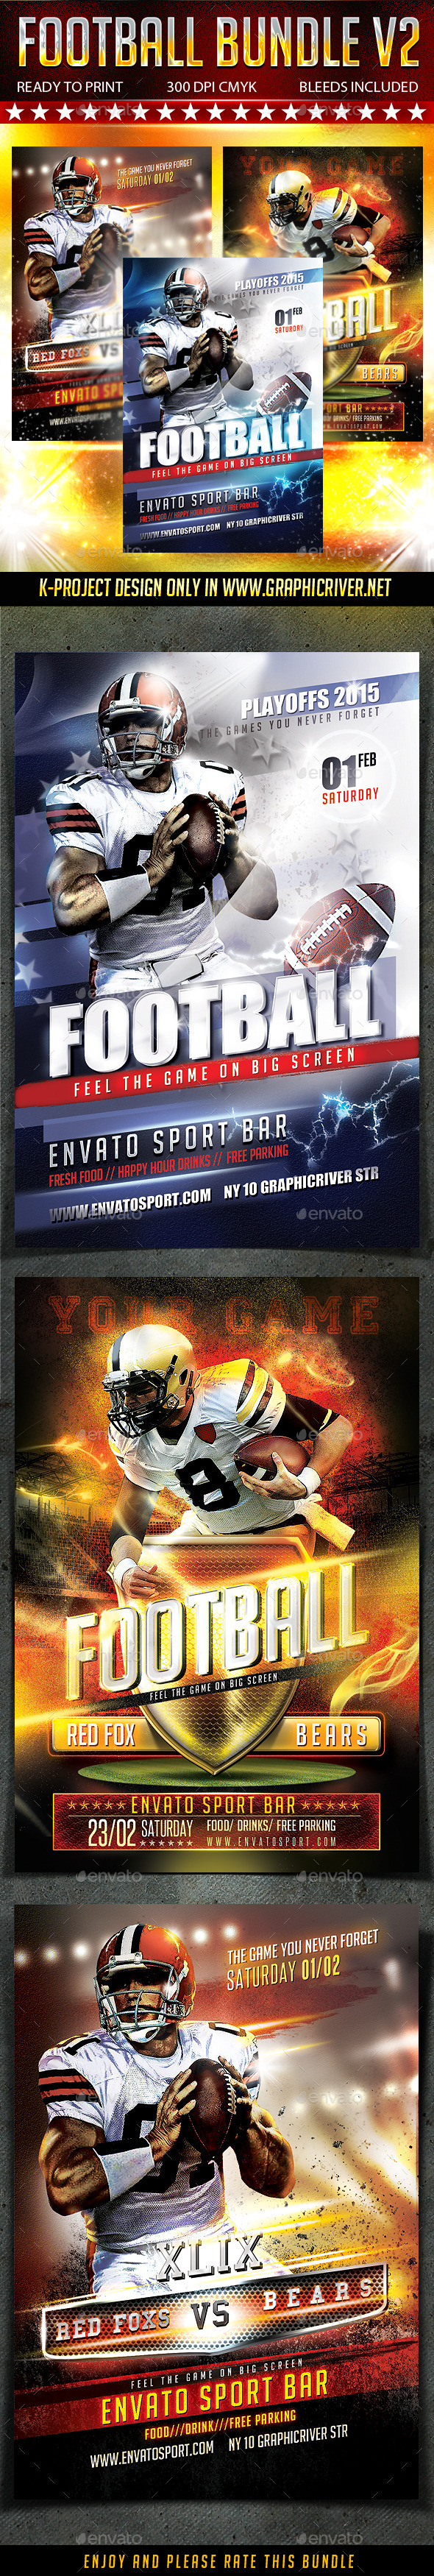 GraphicRiver Football Bundle v2 10003970